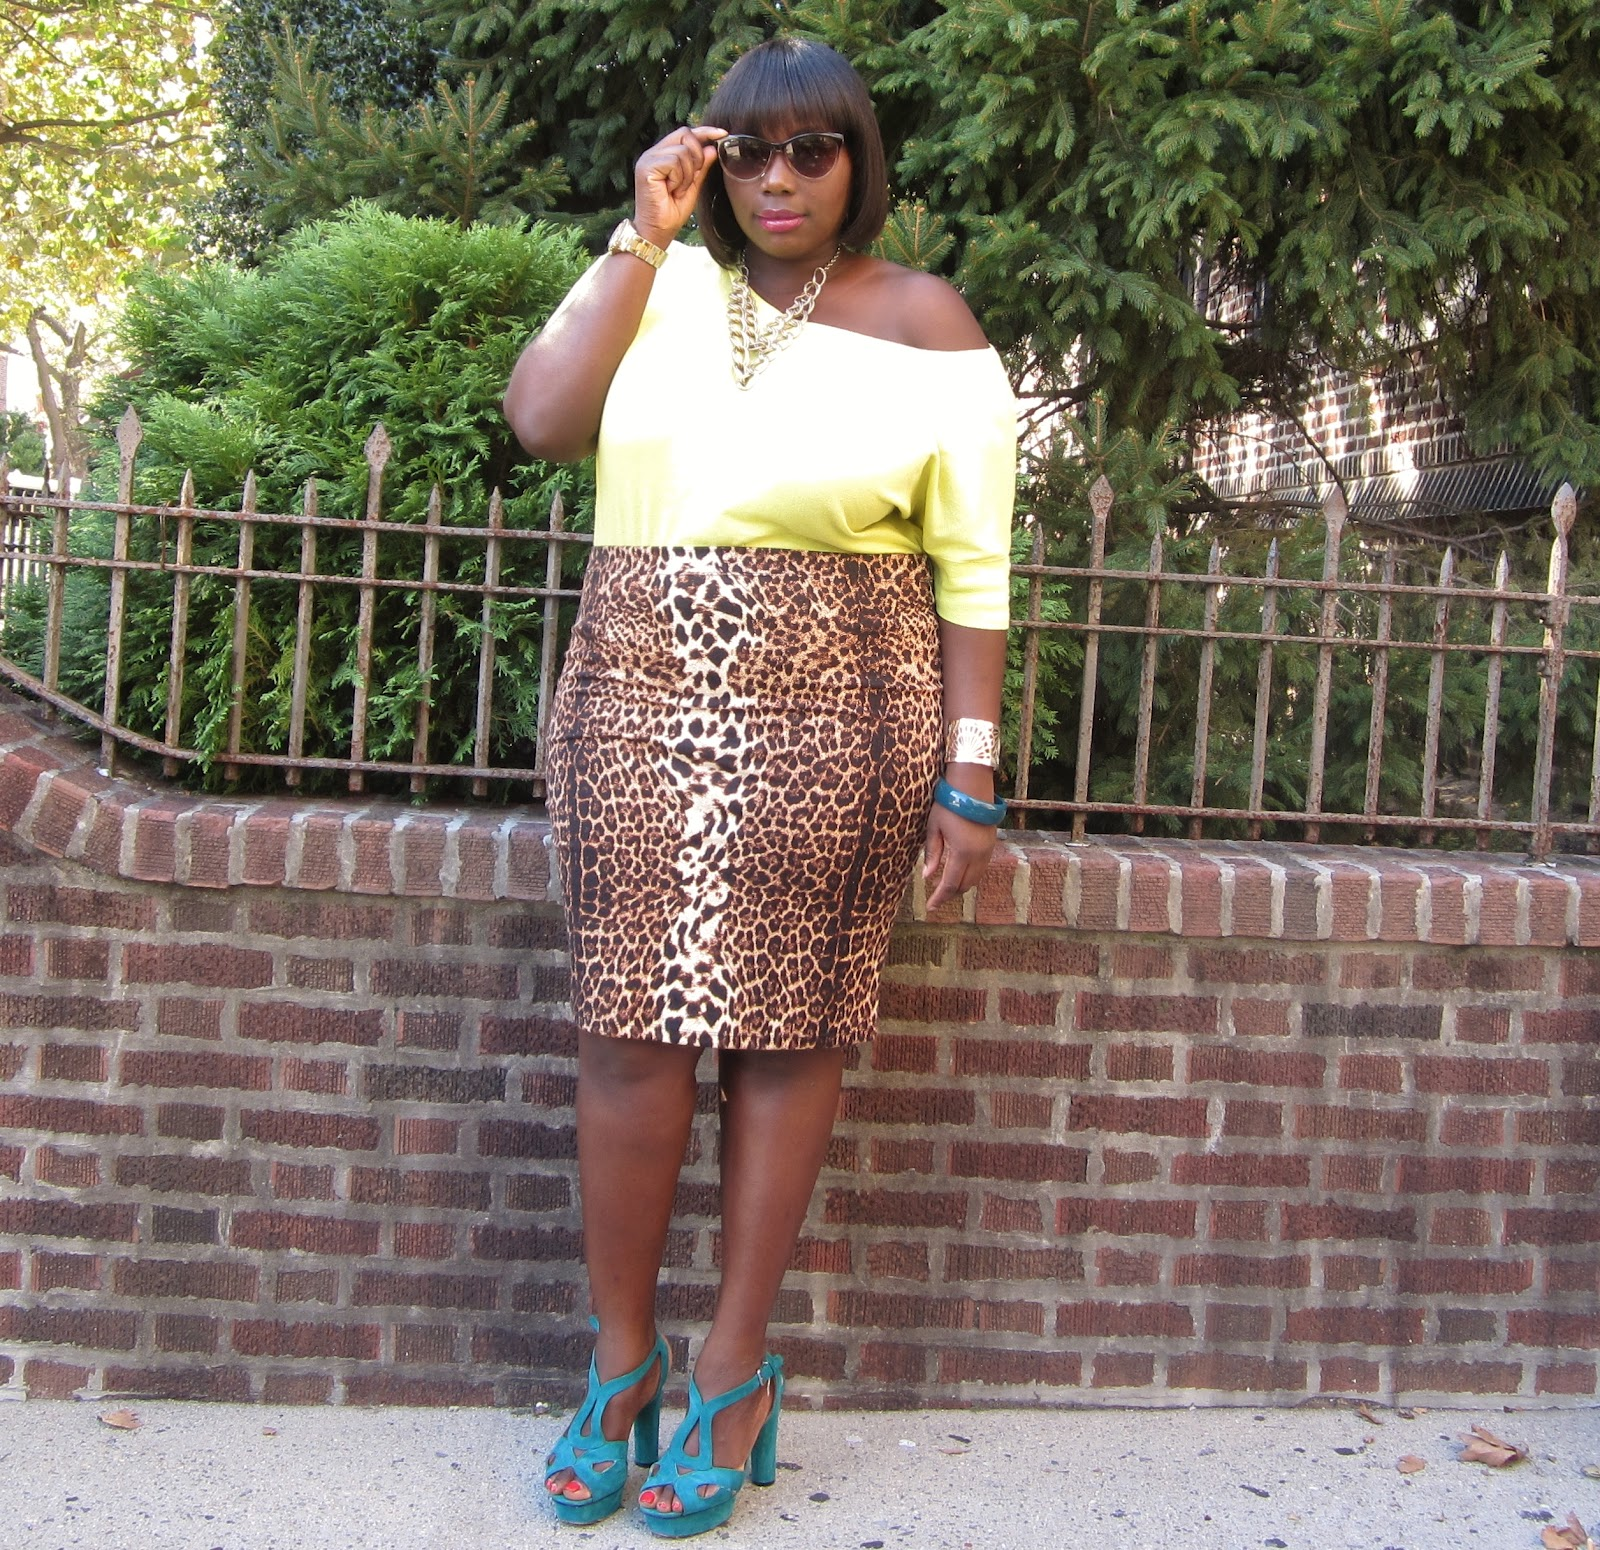 STYLE JOURNEY PROUD TO BE A STYLISH MOM